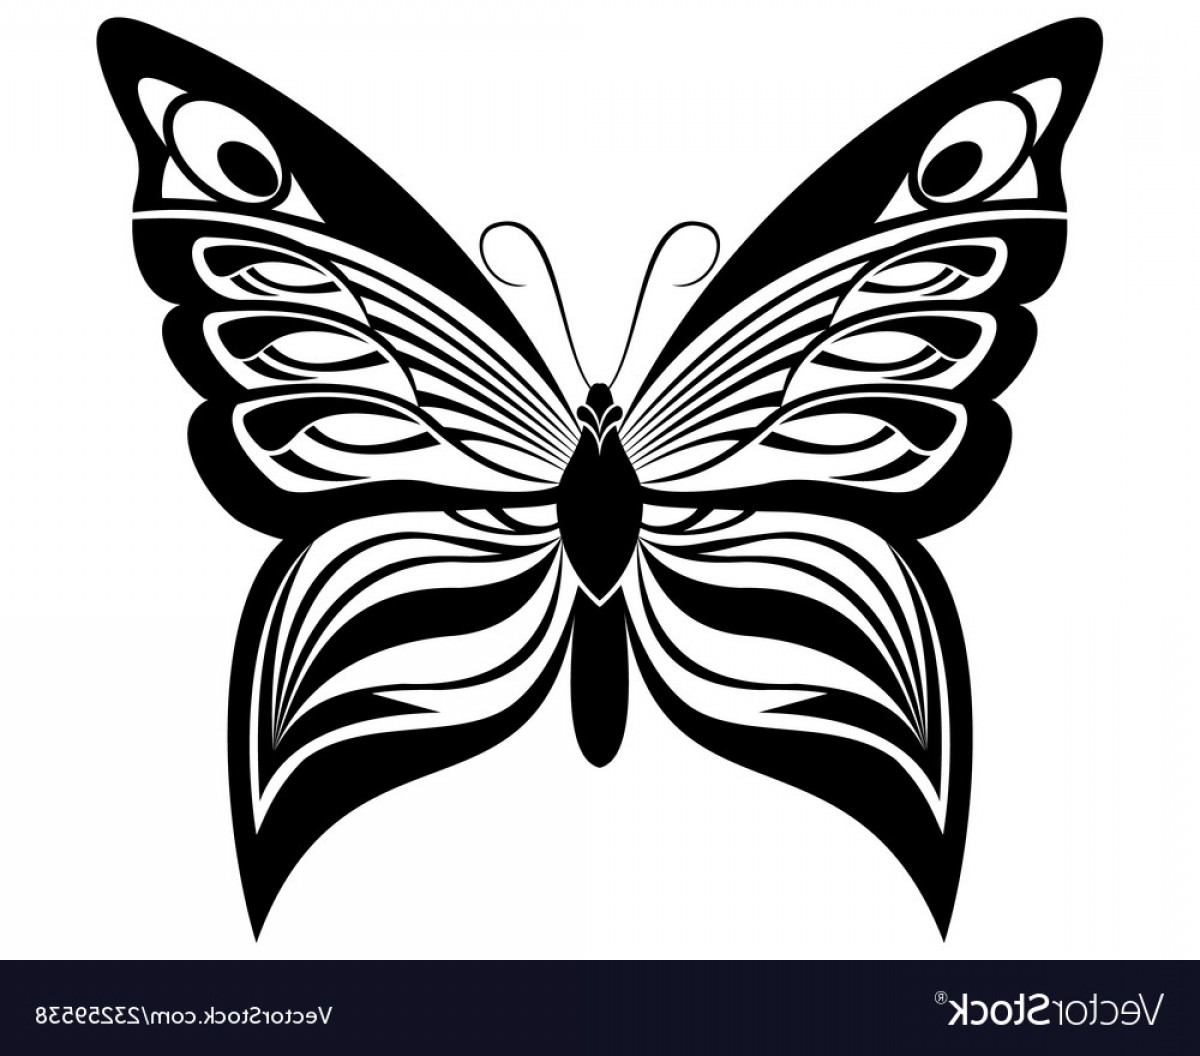 Vector Butterfly Clip Art: Butterfly Black White Silhouette Design Vector